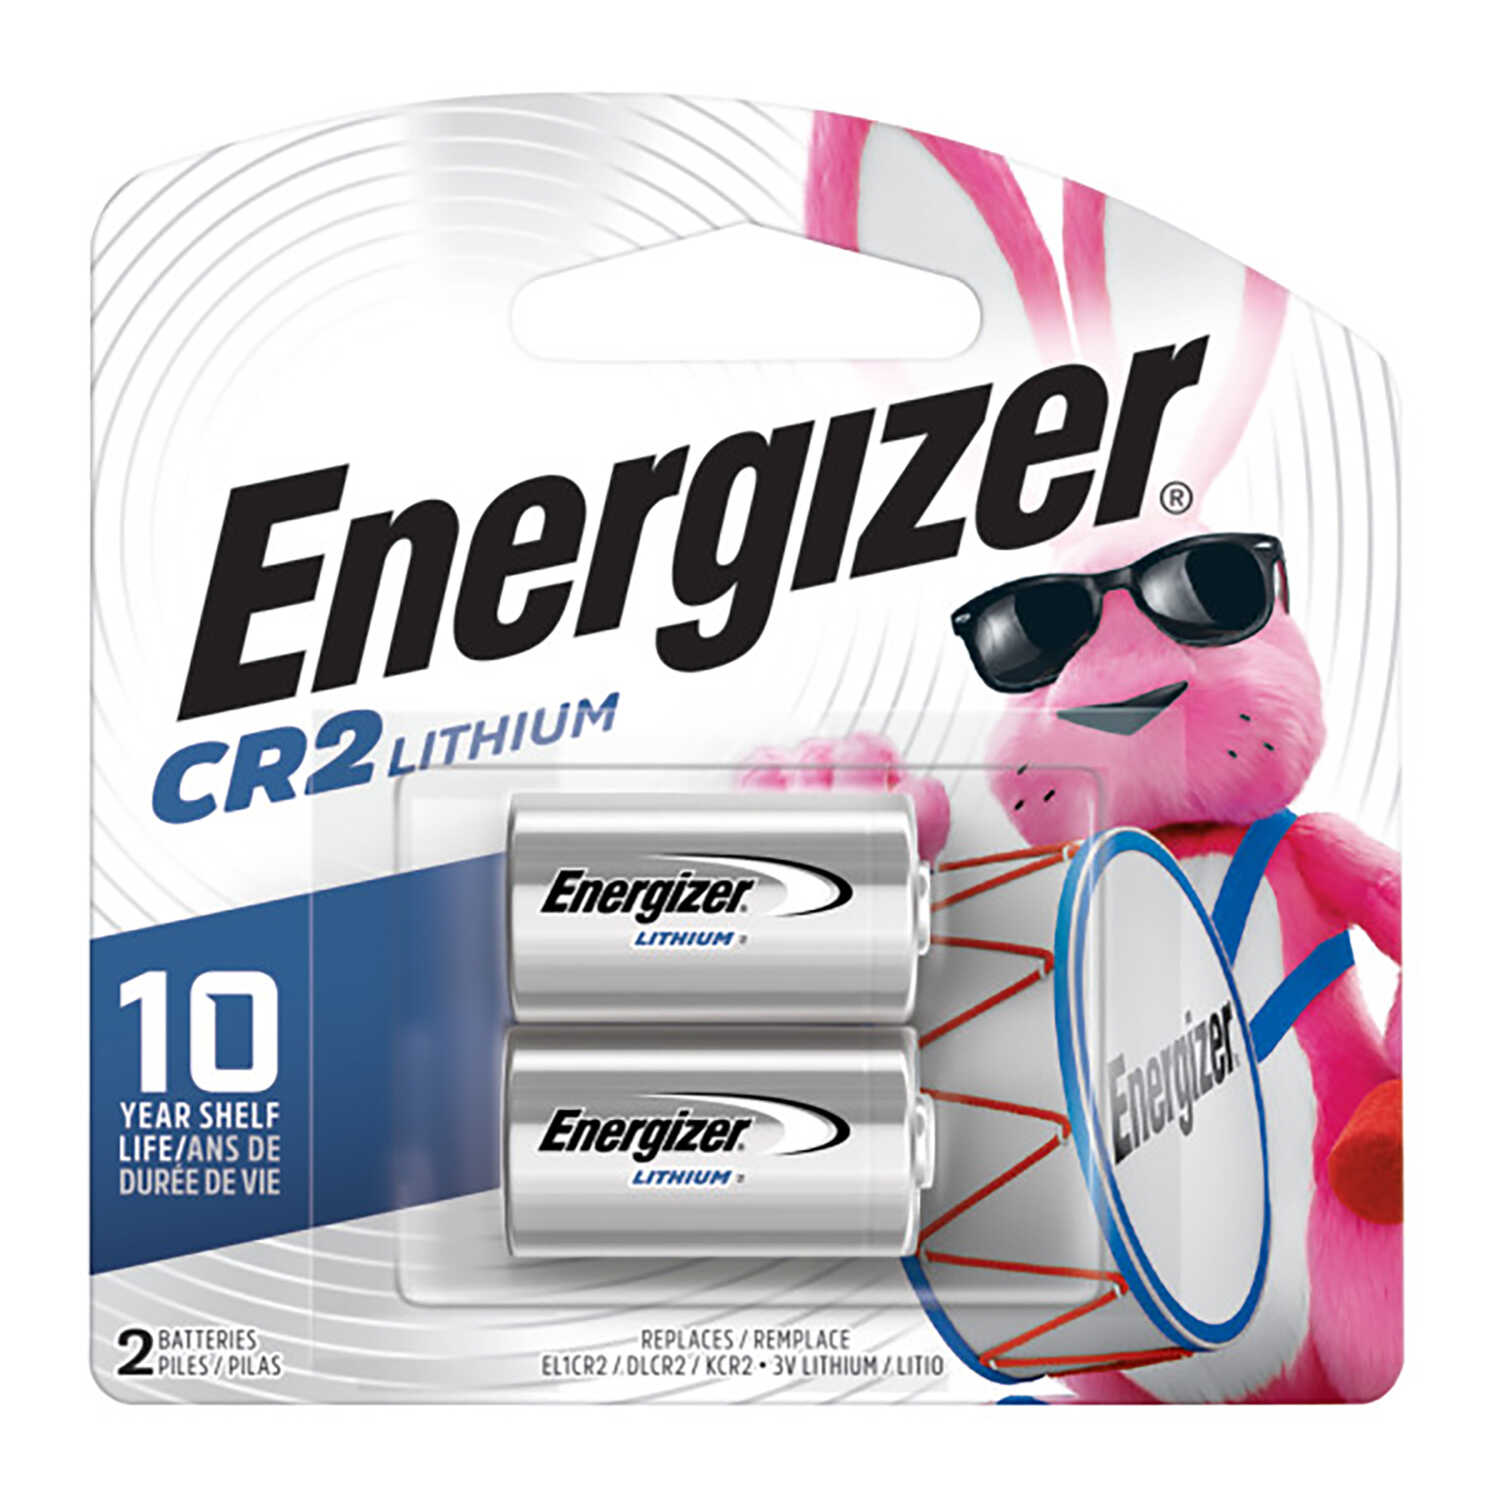 Energizer  Lithium  CR2  3 volt Camera Battery  2 pk